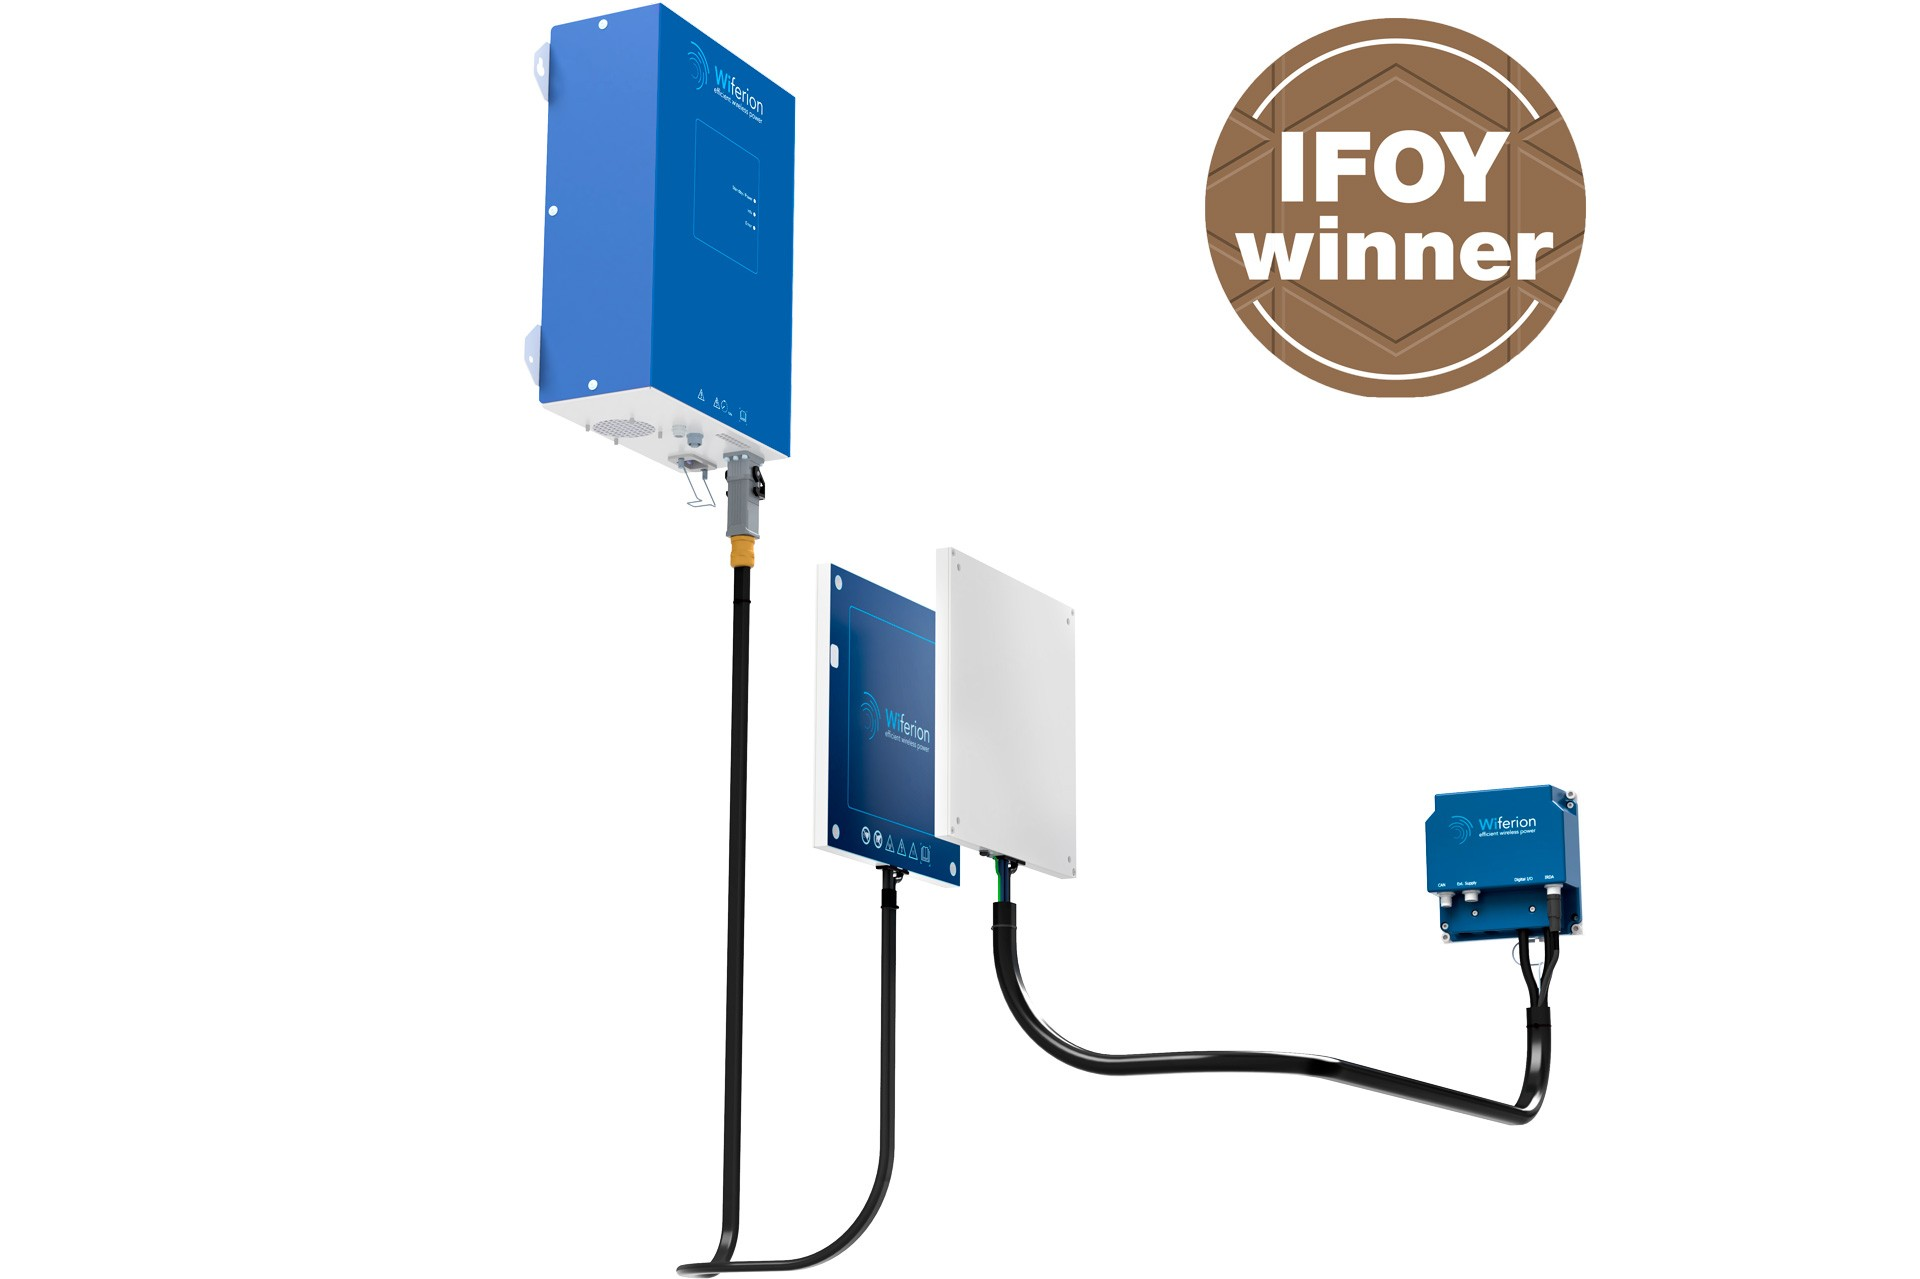 etaLINK 3000 - industrial wireless power - industrielles induktives laden - wireless charging agv - ifoy winner